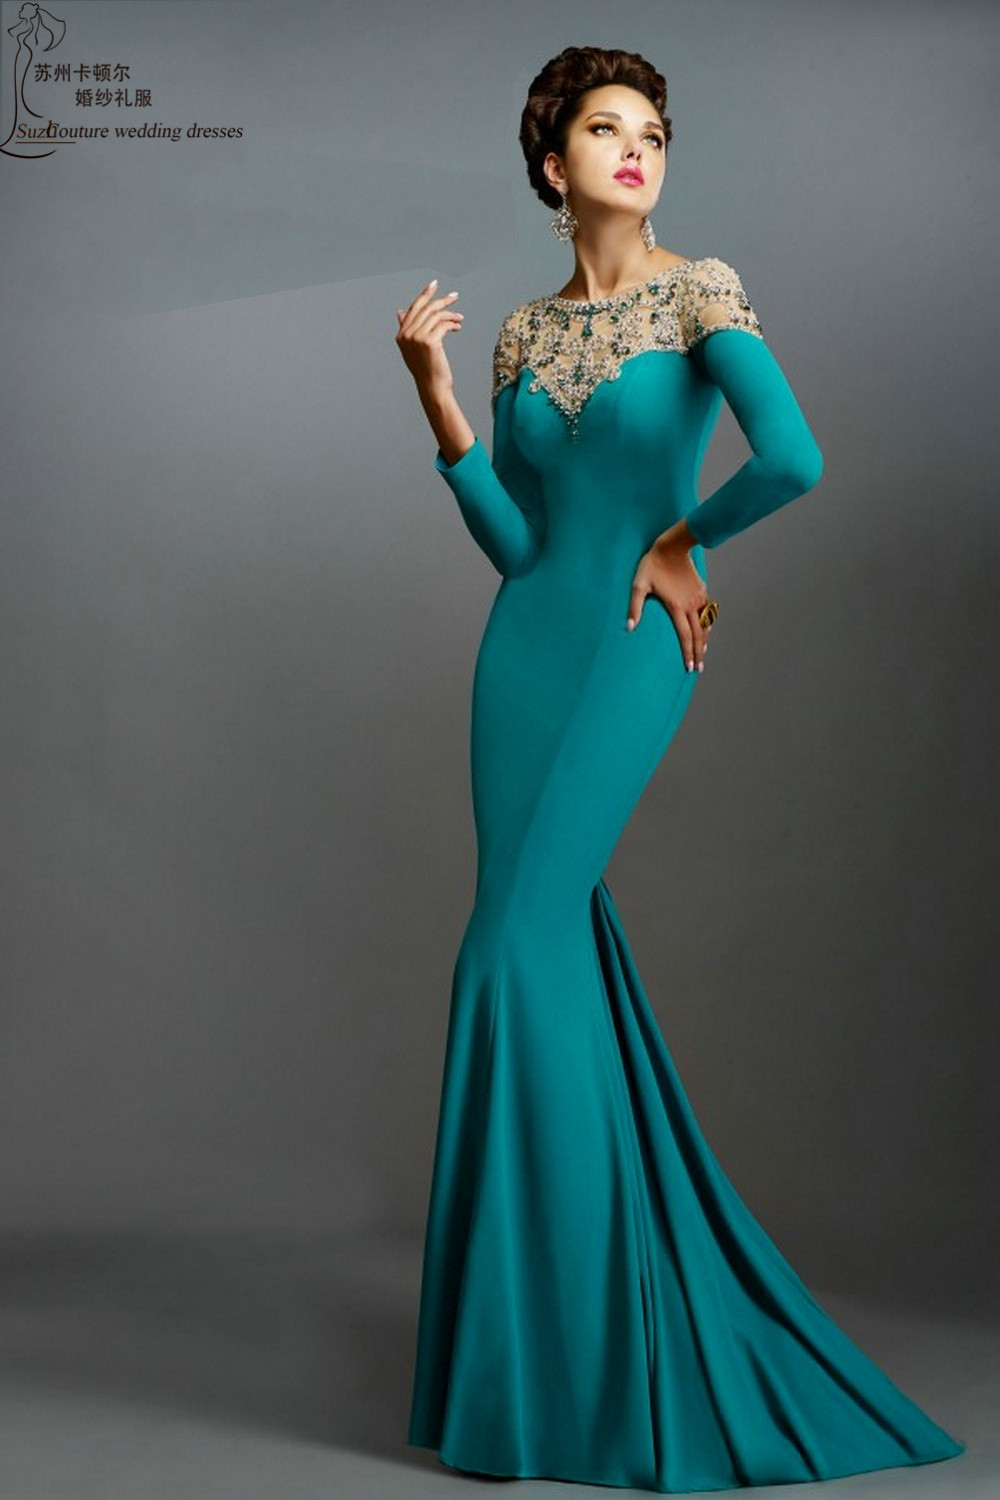 Long sleeve prom dresses 2016 PM1374 elegant long mermaid prom dress ...